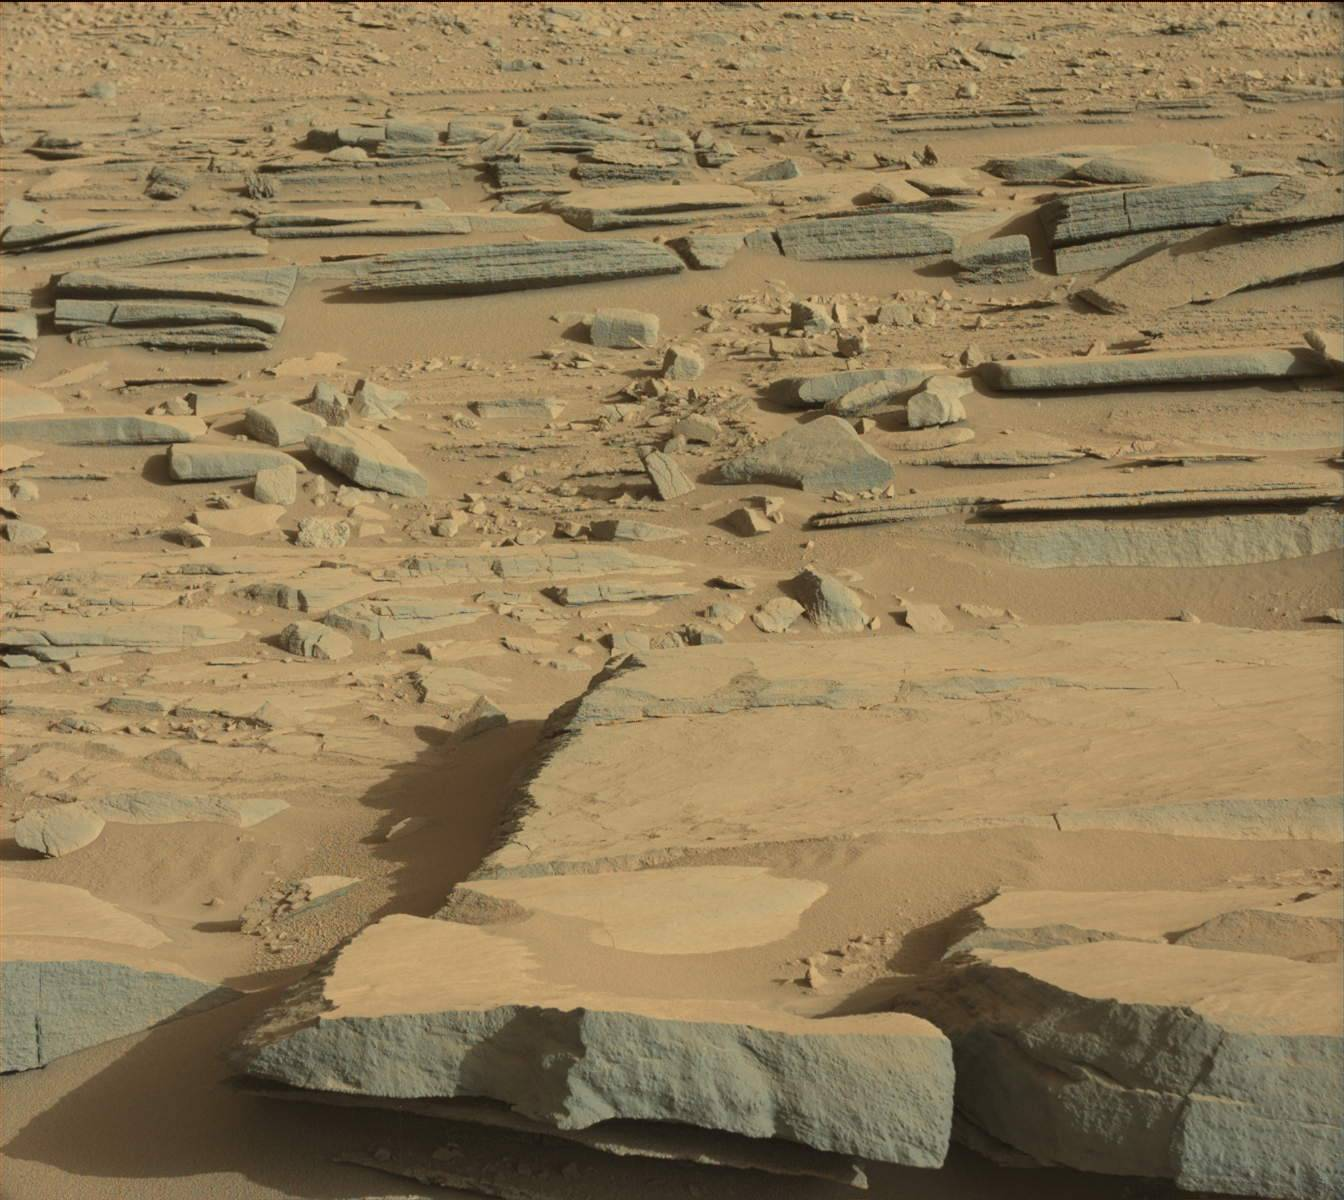 mars rovers destroyed - photo #14